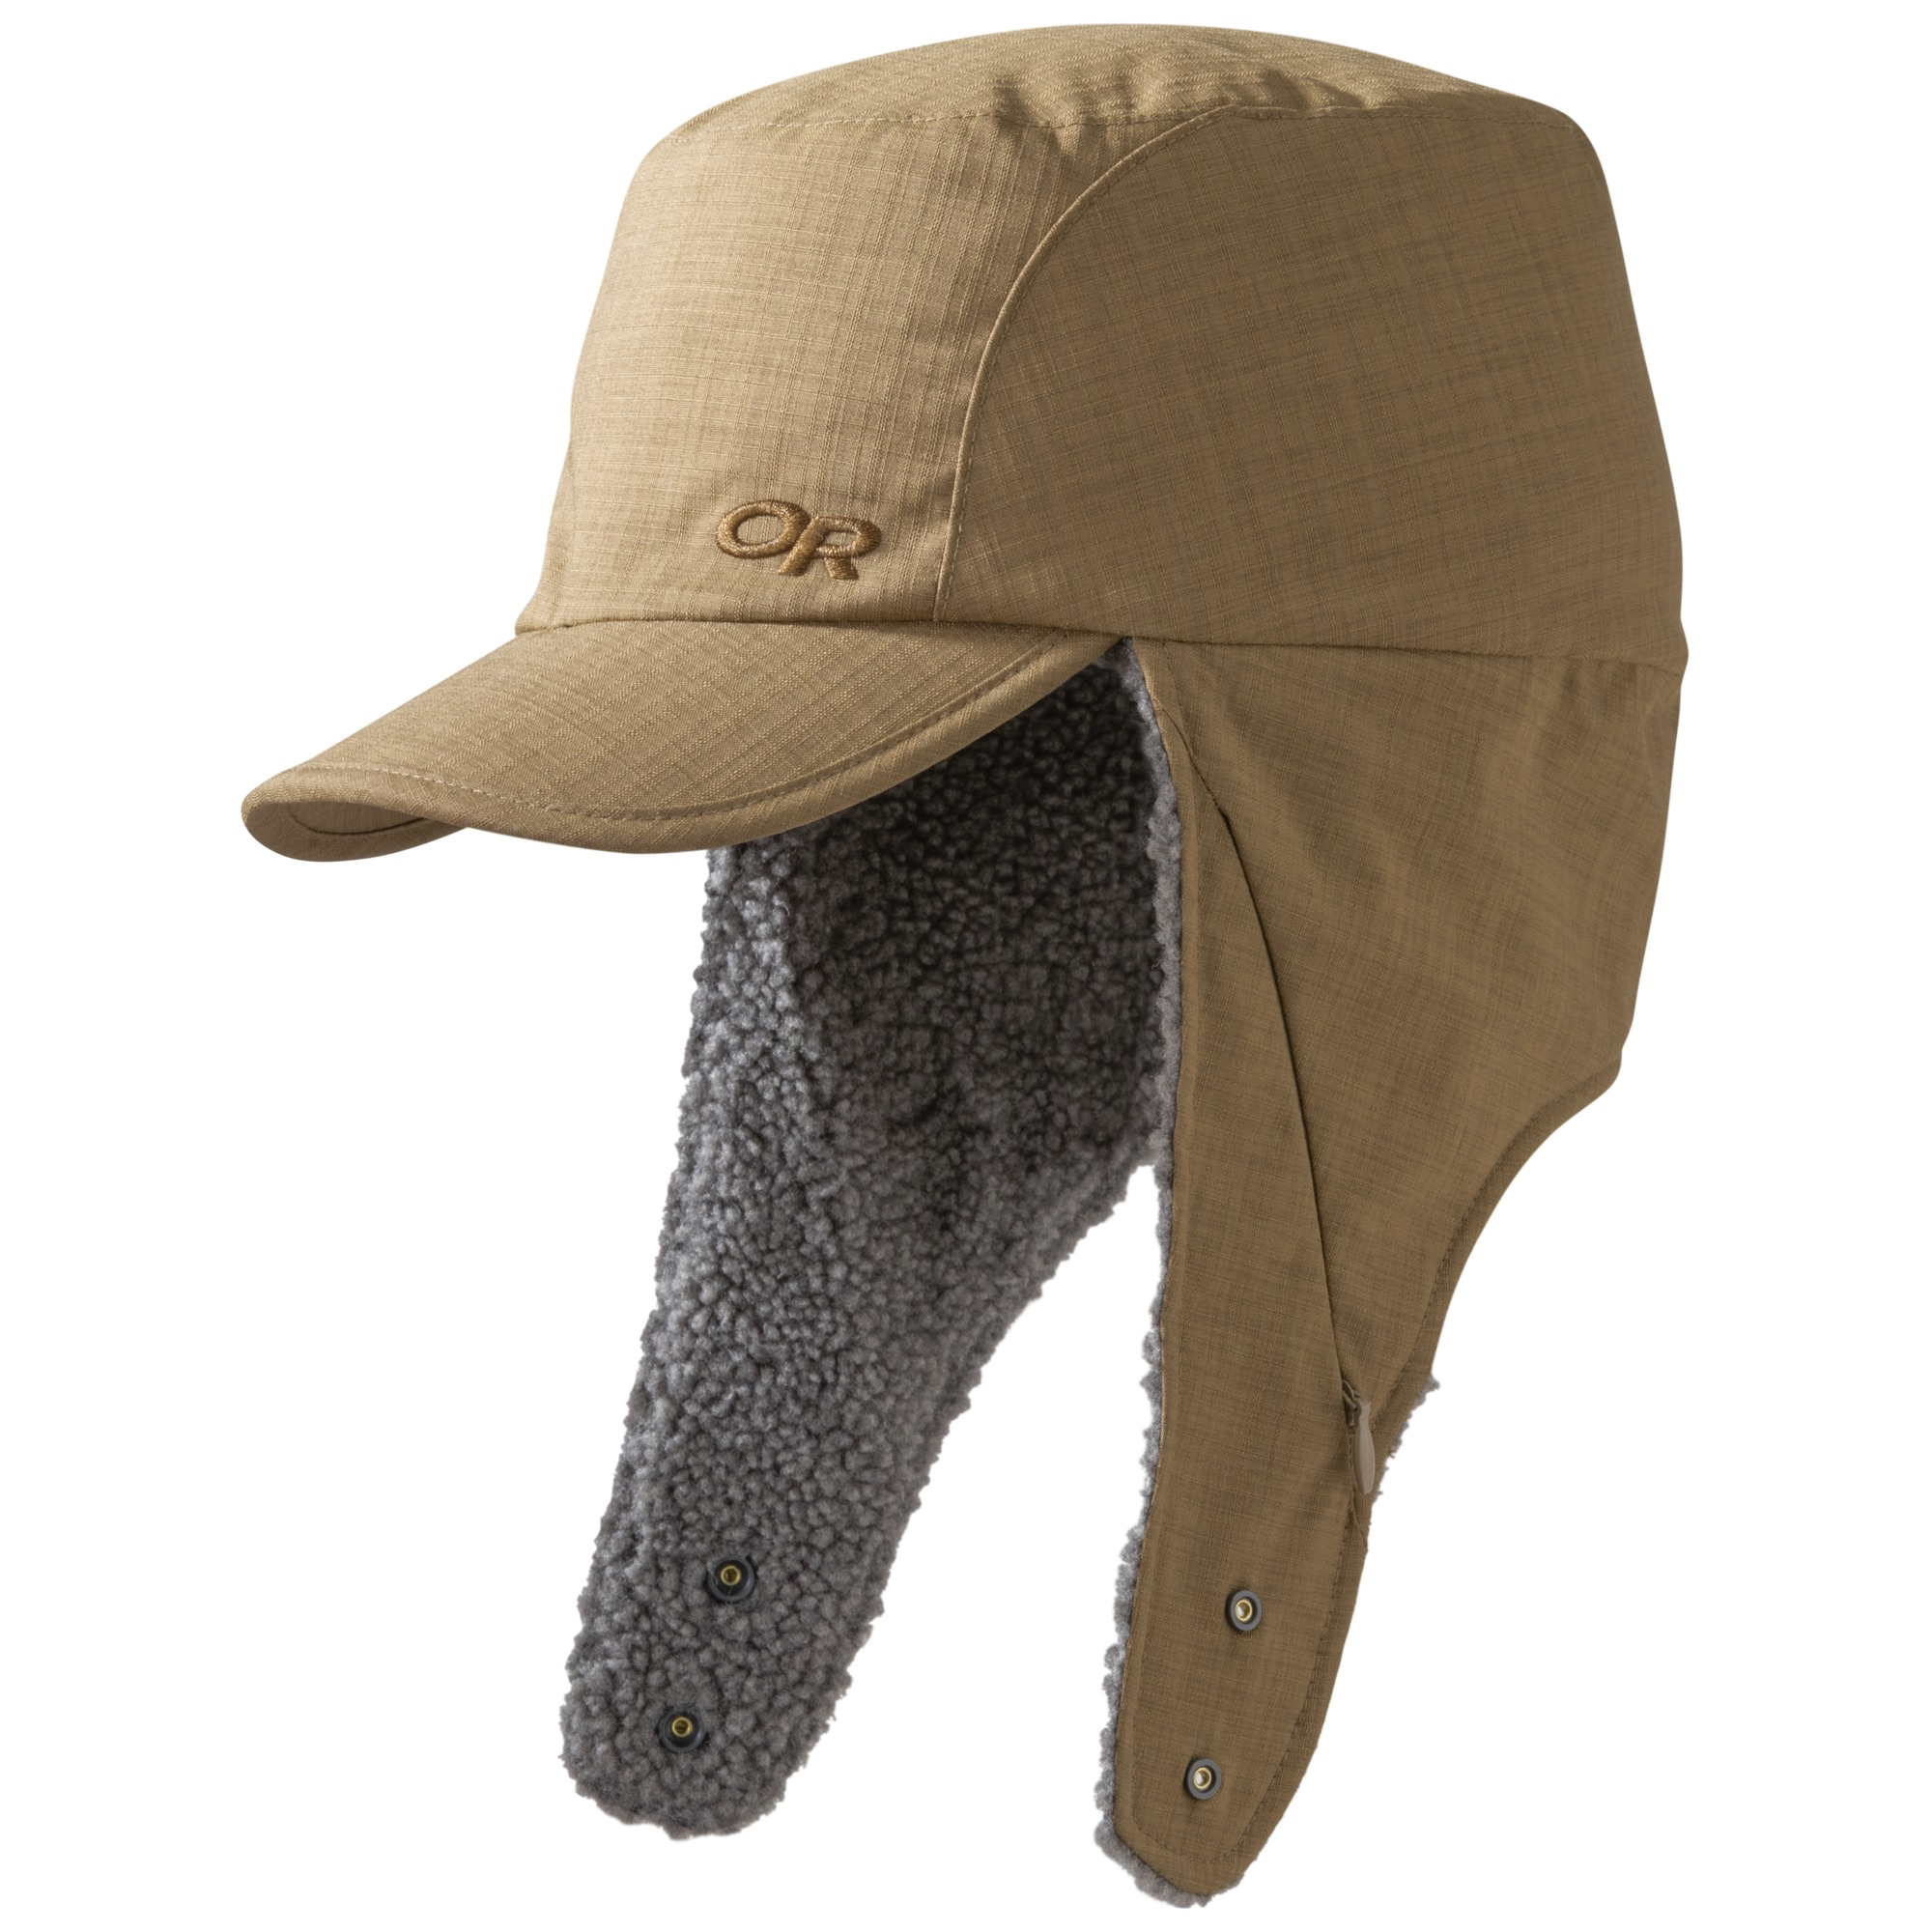 178c7b0a3eb05 Whitefish Hat - coyote